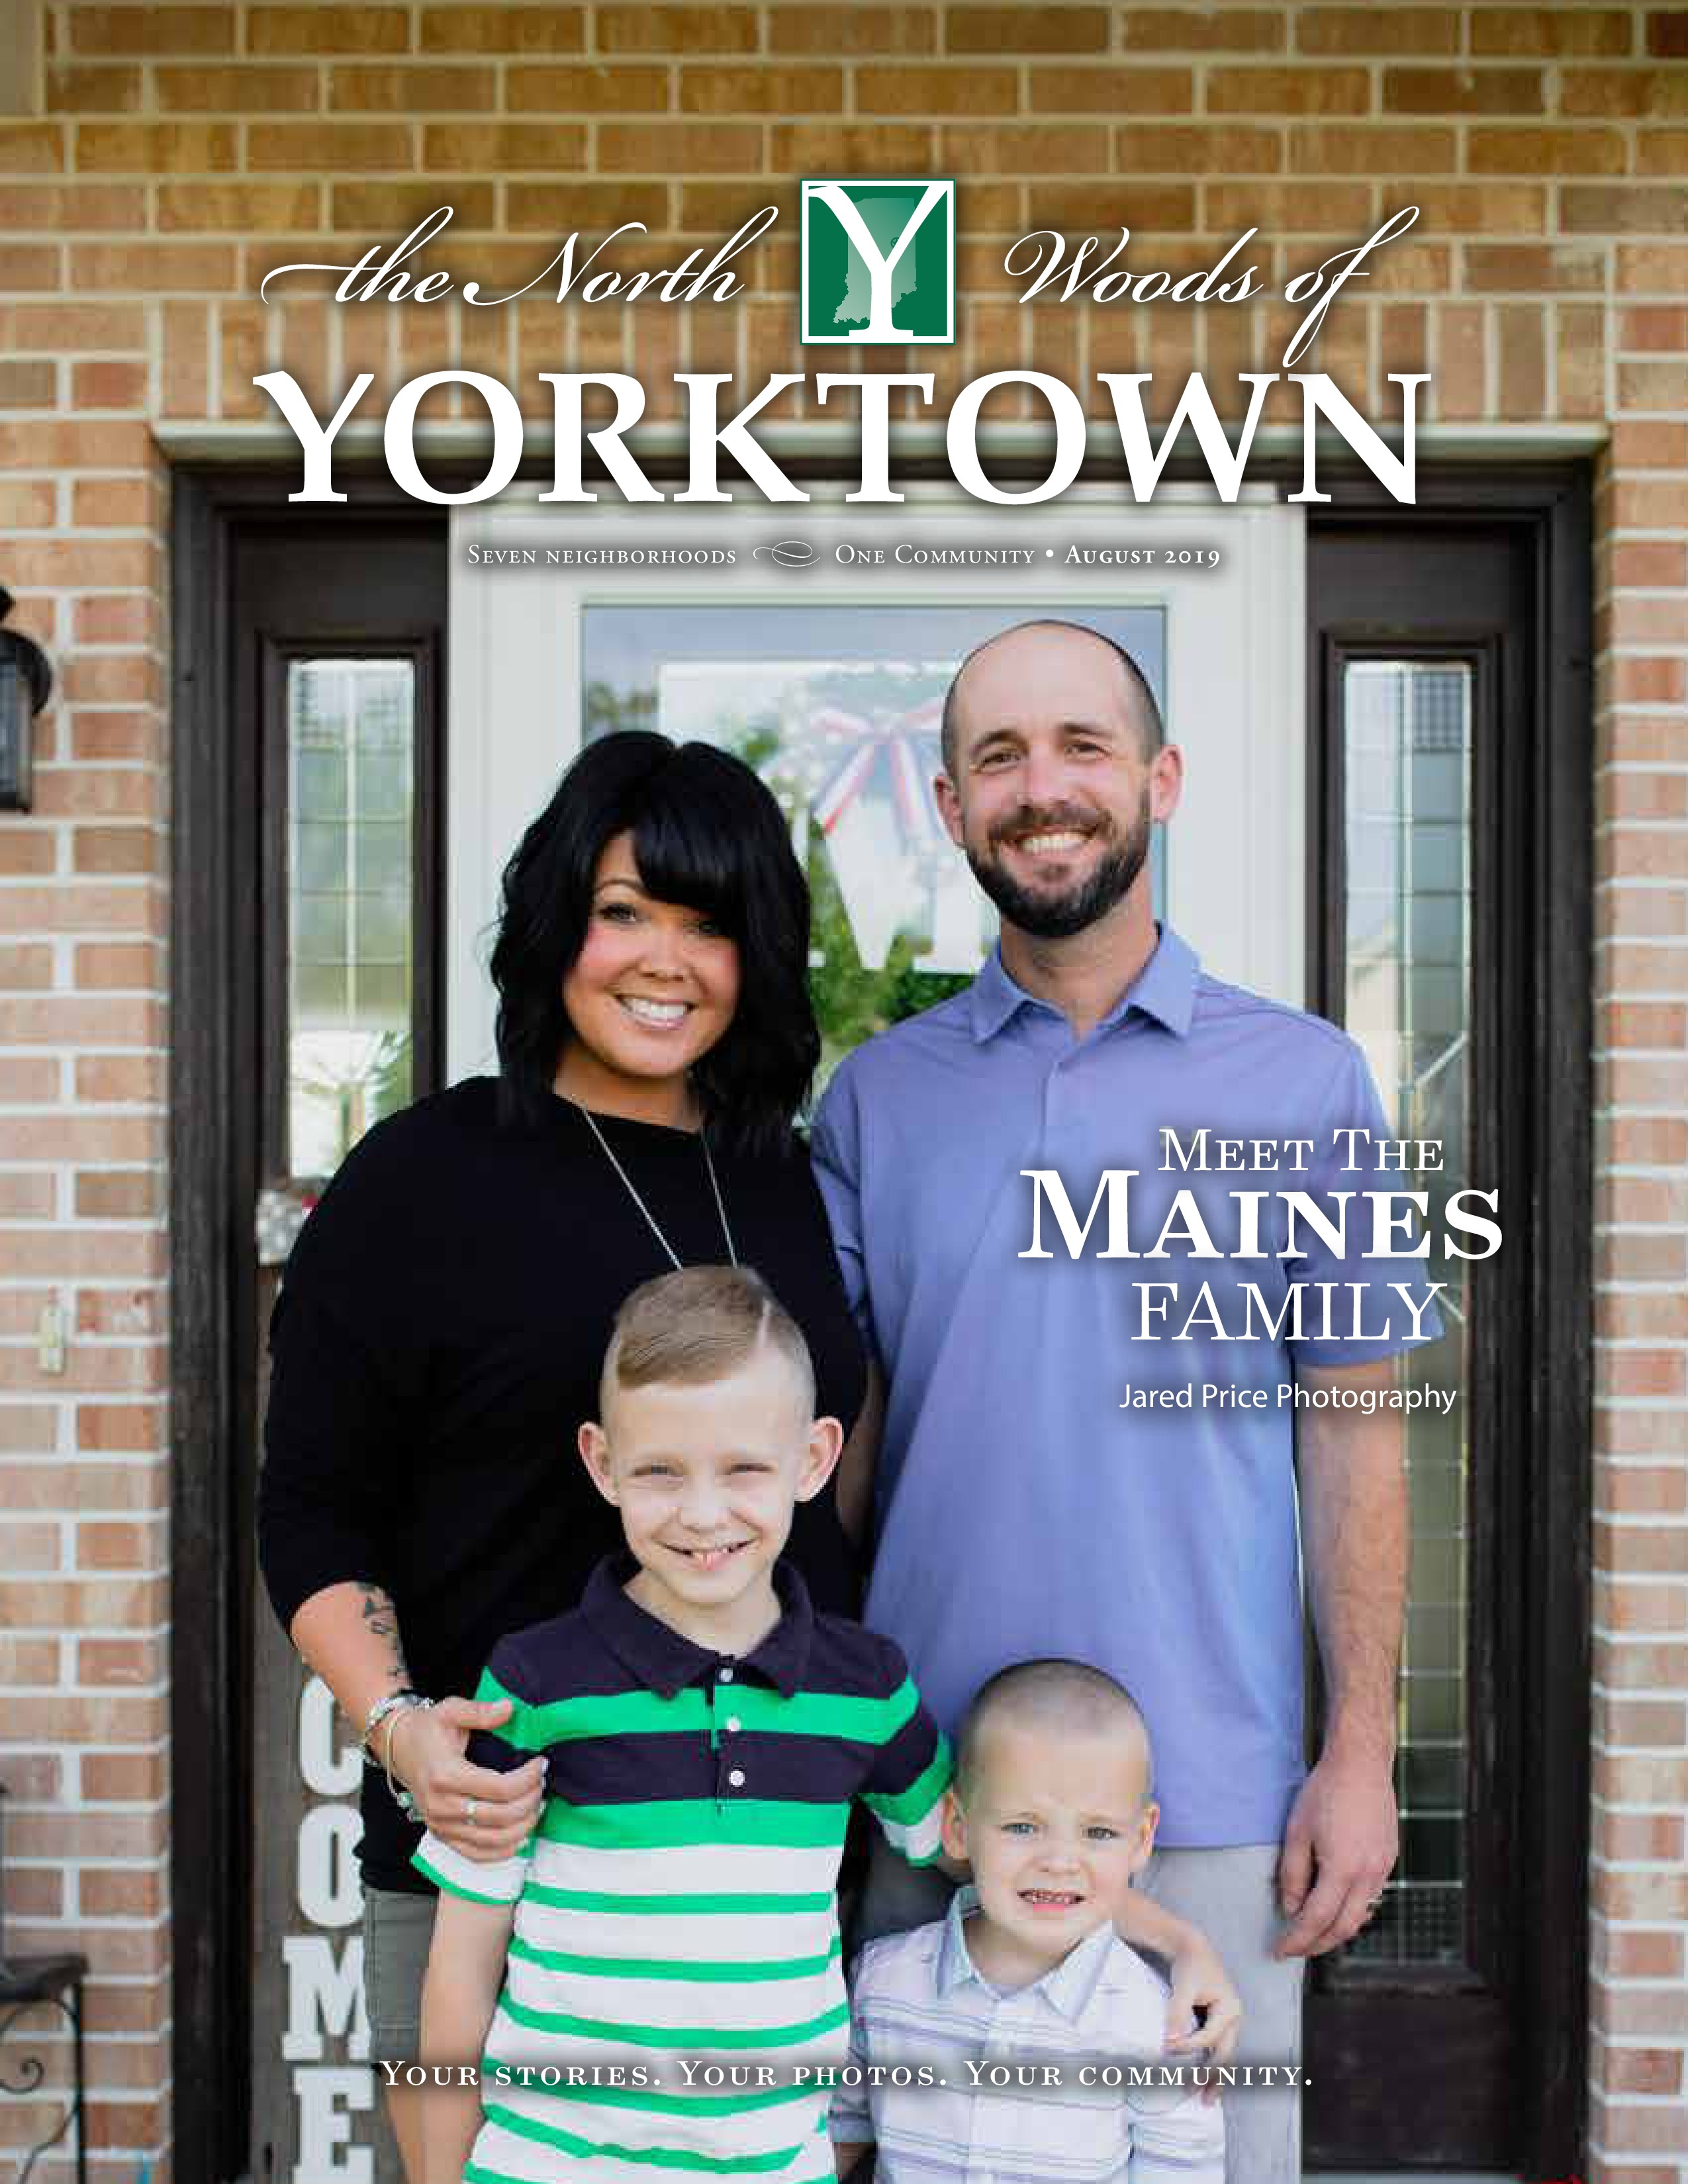 Aug 2019 the north woods of yorktown page 1